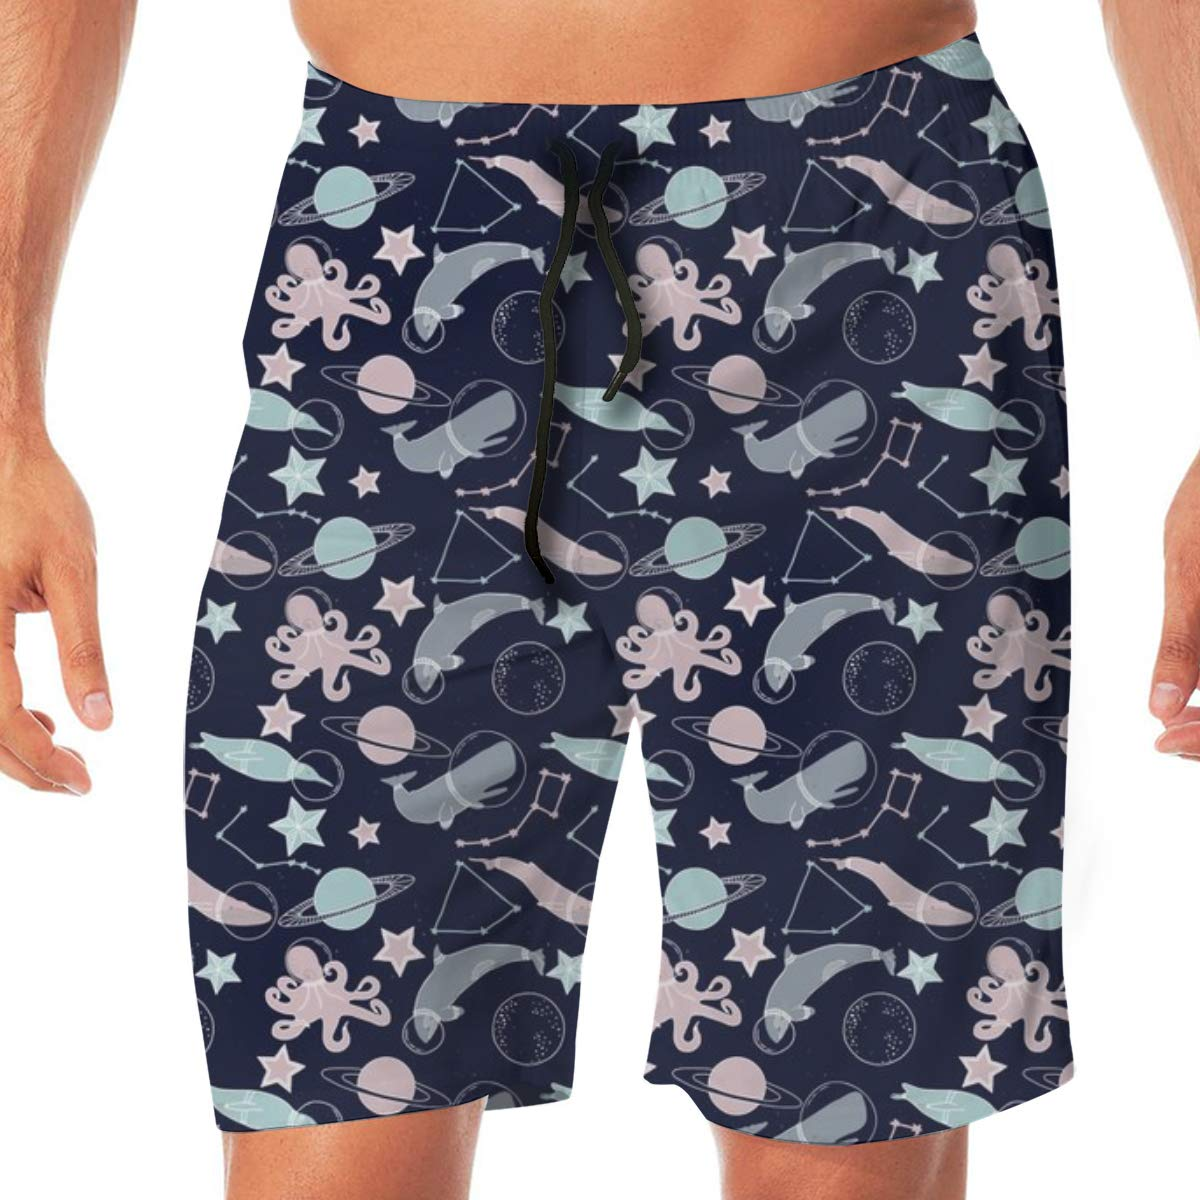 Dark Blue Mens Swimming Trousers Quick-Drying Beach Polyester Shorts 10 Deep Sea Animals in Space